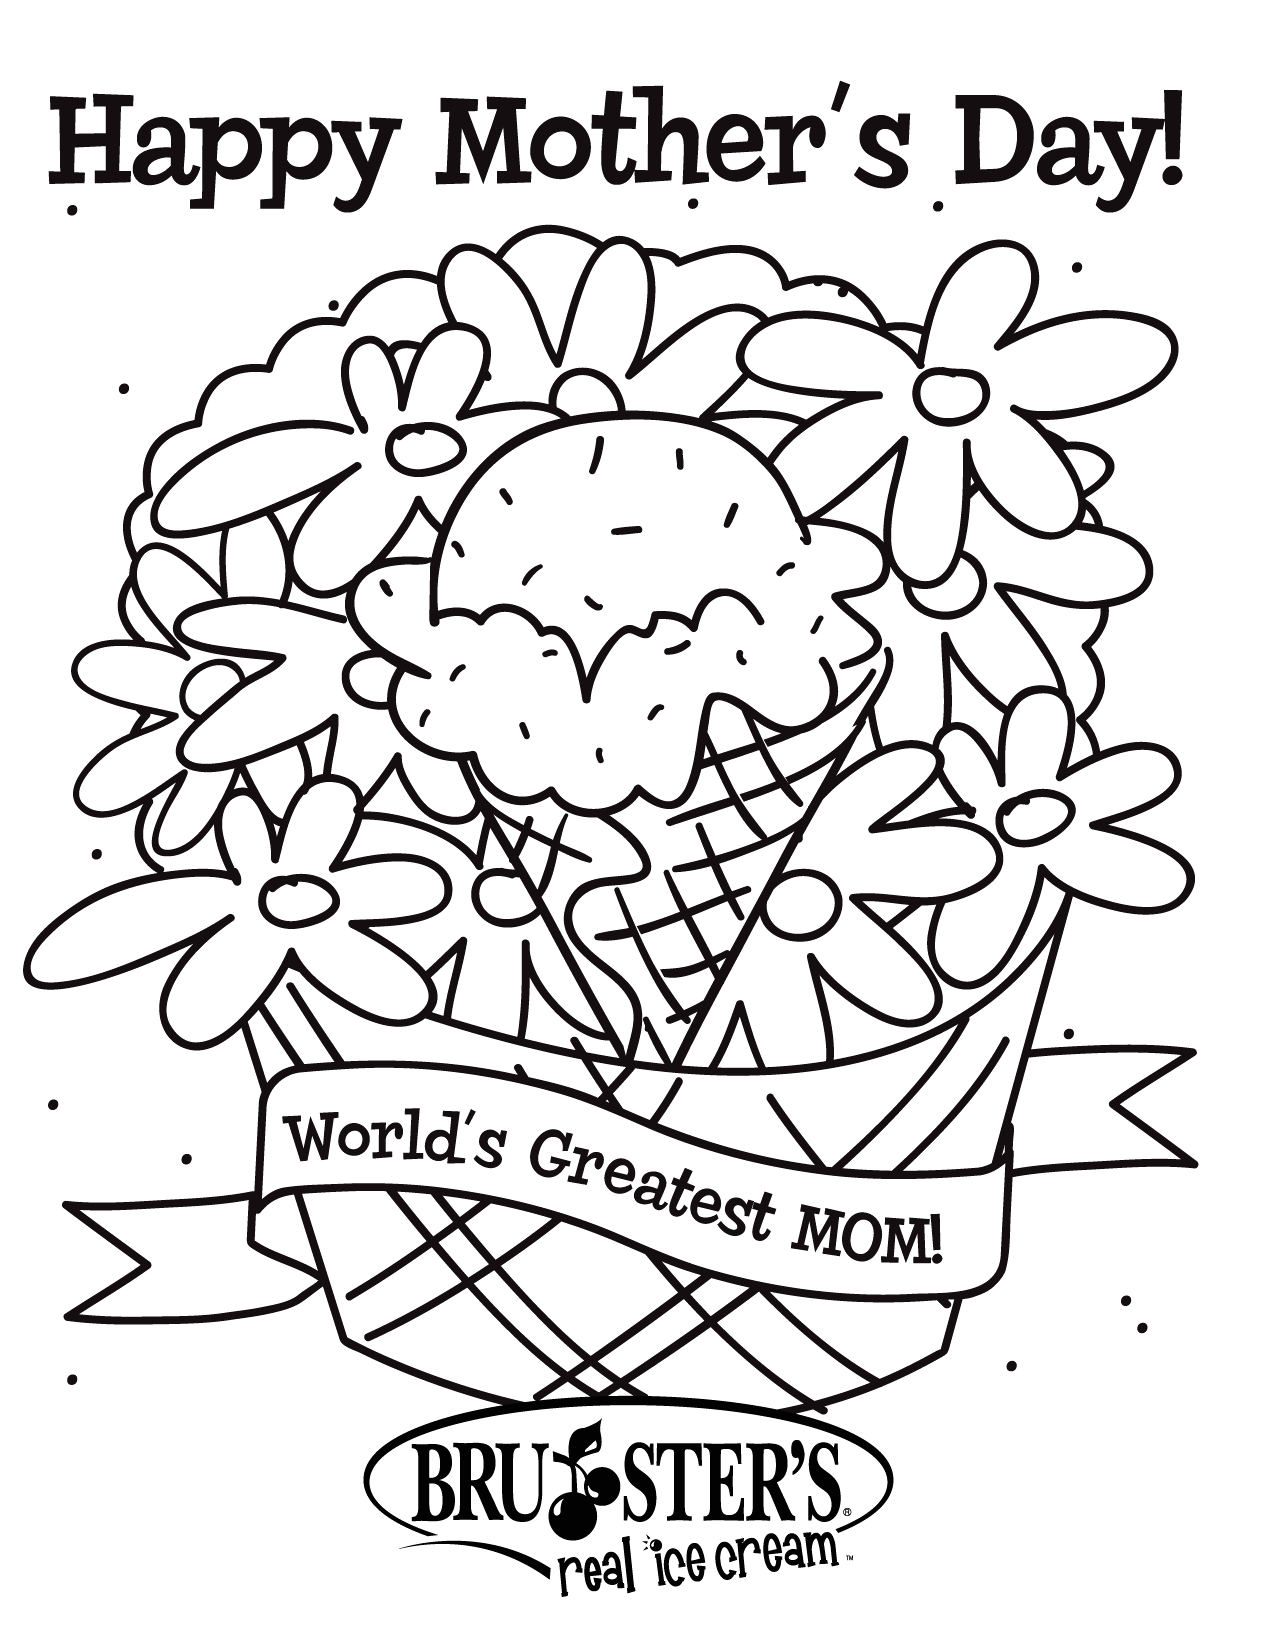 Free Printable Mothers Day Cards Coloring Pages Free Printable Mothers Day Coloring Pages for Kids